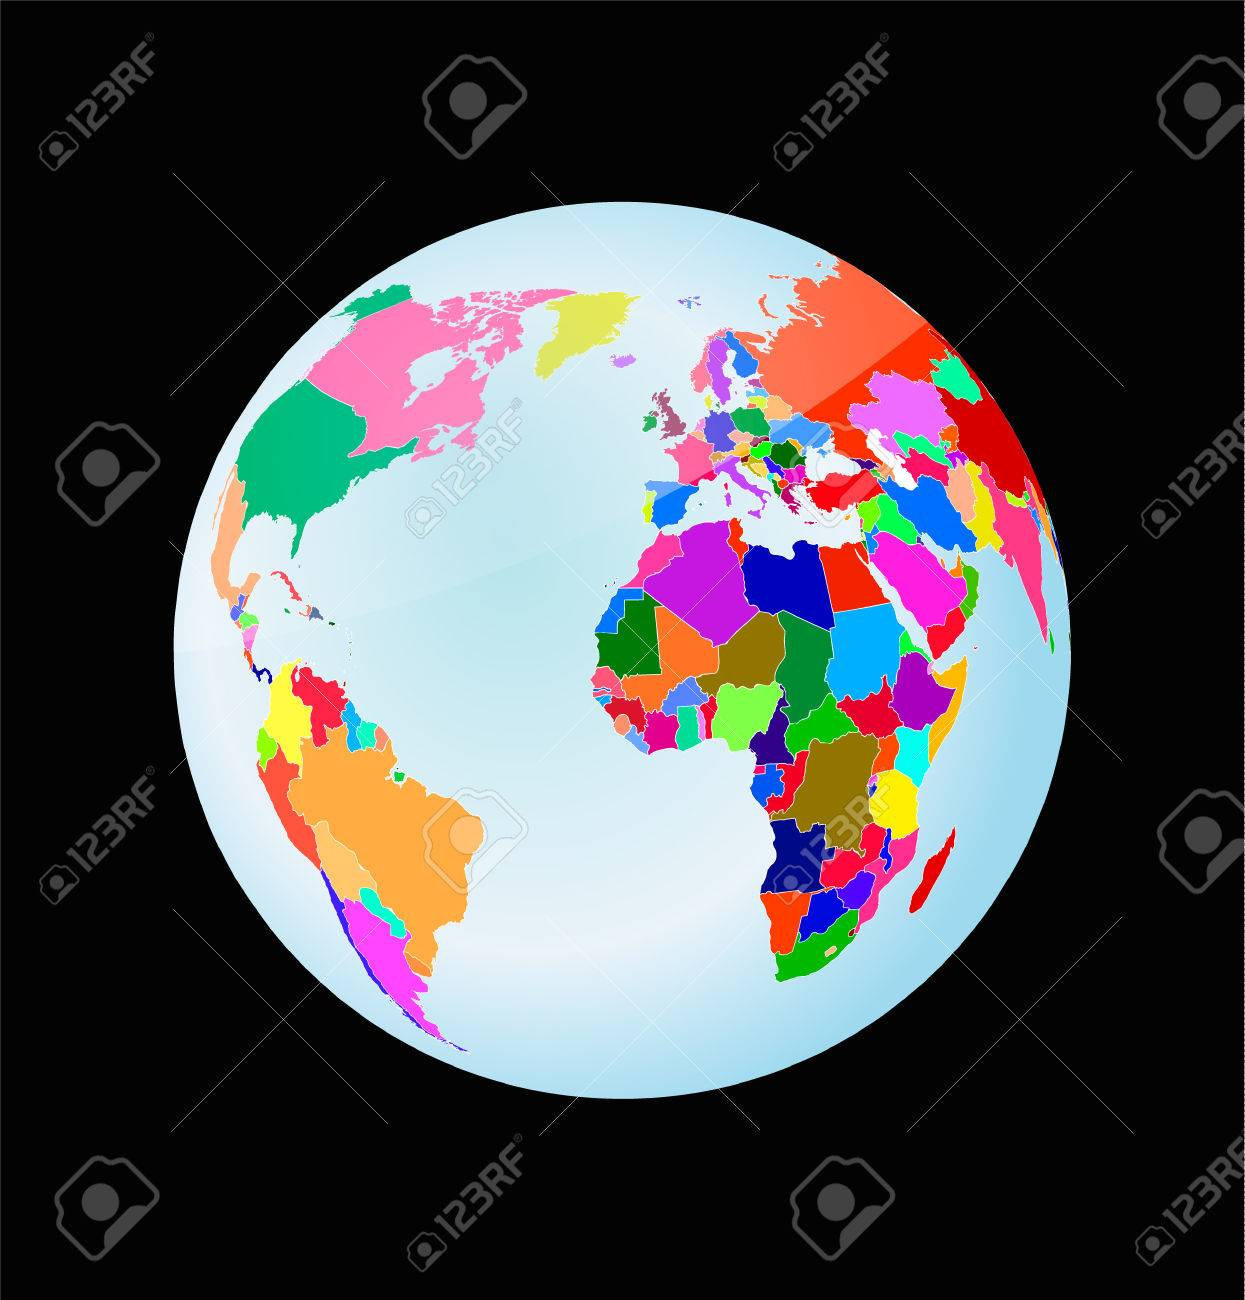 3d globe with political world map toy style earth sphere royalty 3d globe with political world map toy style earth sphere stock vector 74685625 gumiabroncs Gallery